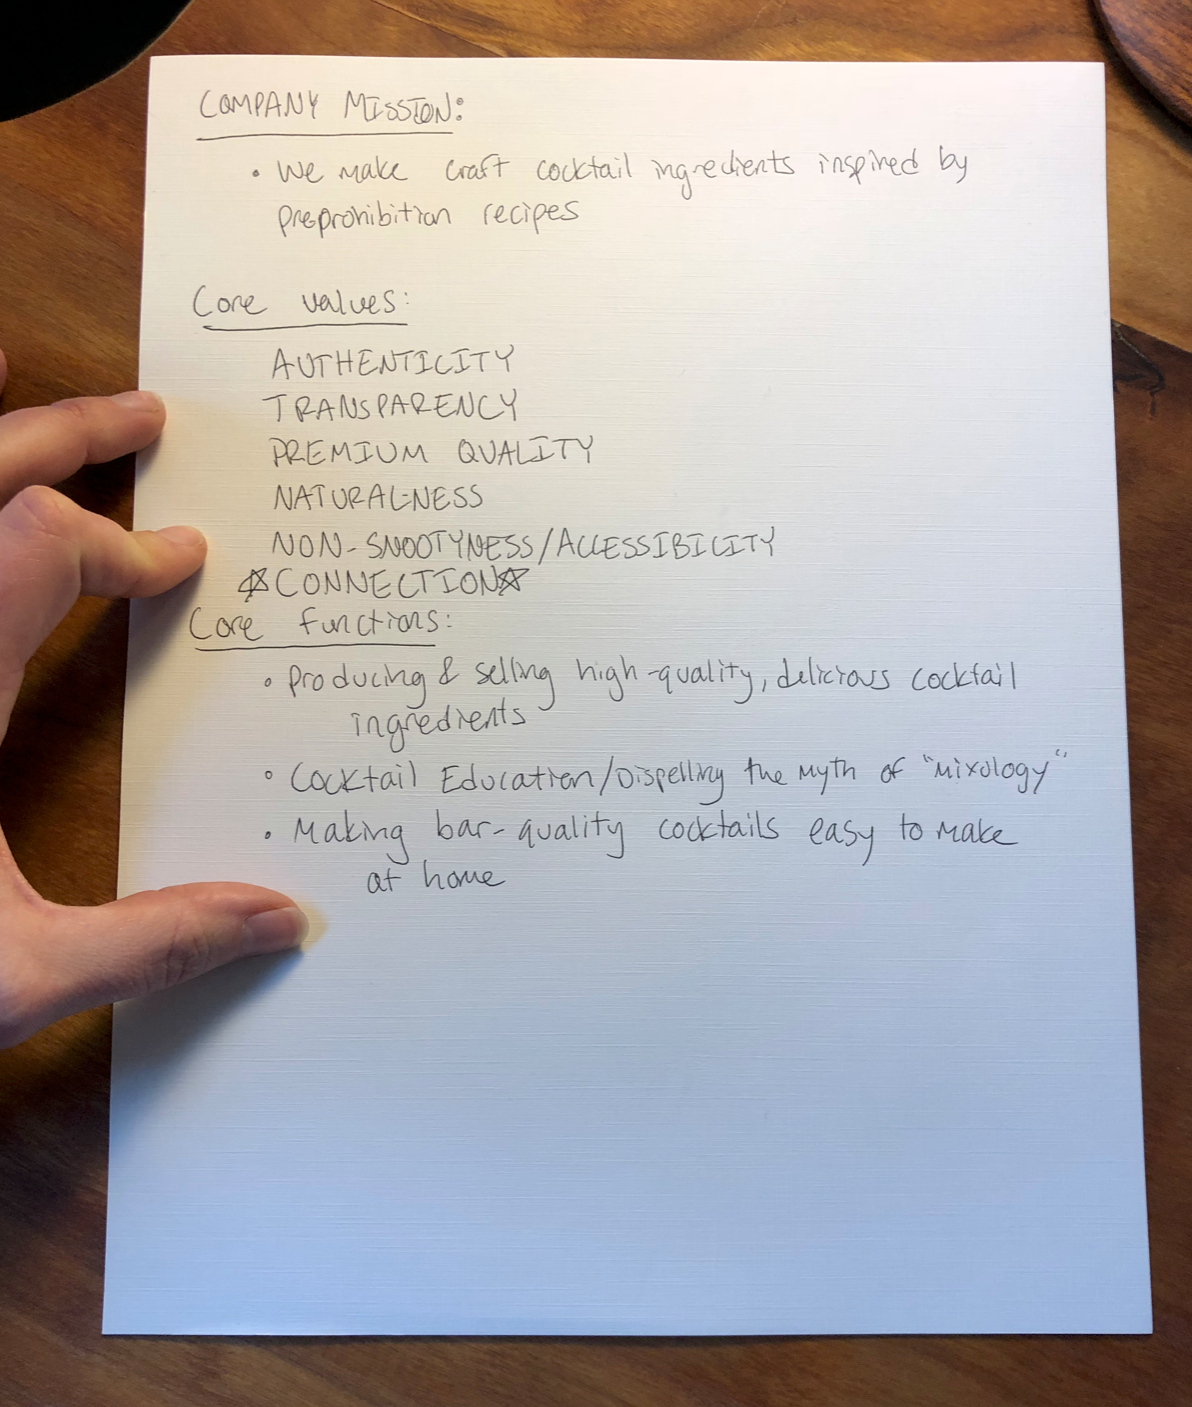 An example of our Founder's poor handwriting.